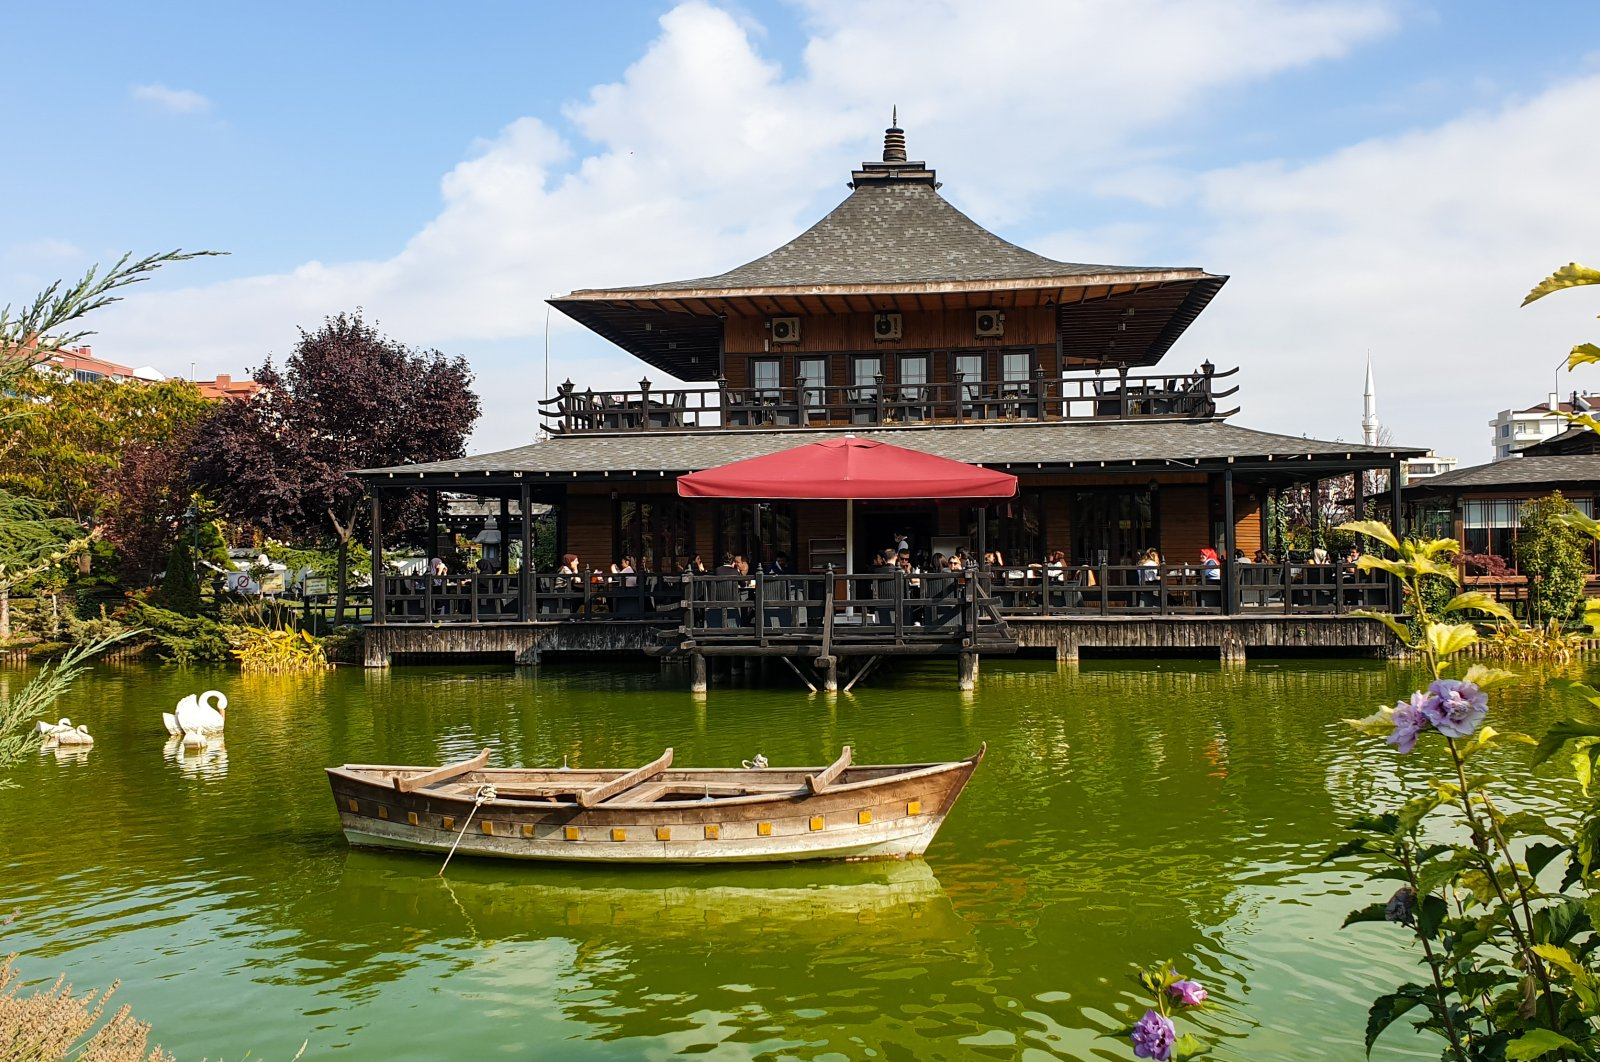 A cafe built in the Japanese architectural style at the Kyoto Japanese Garden, in the Selçuklu district of Konya, central Turkey. (Photo by Argun Konuk)